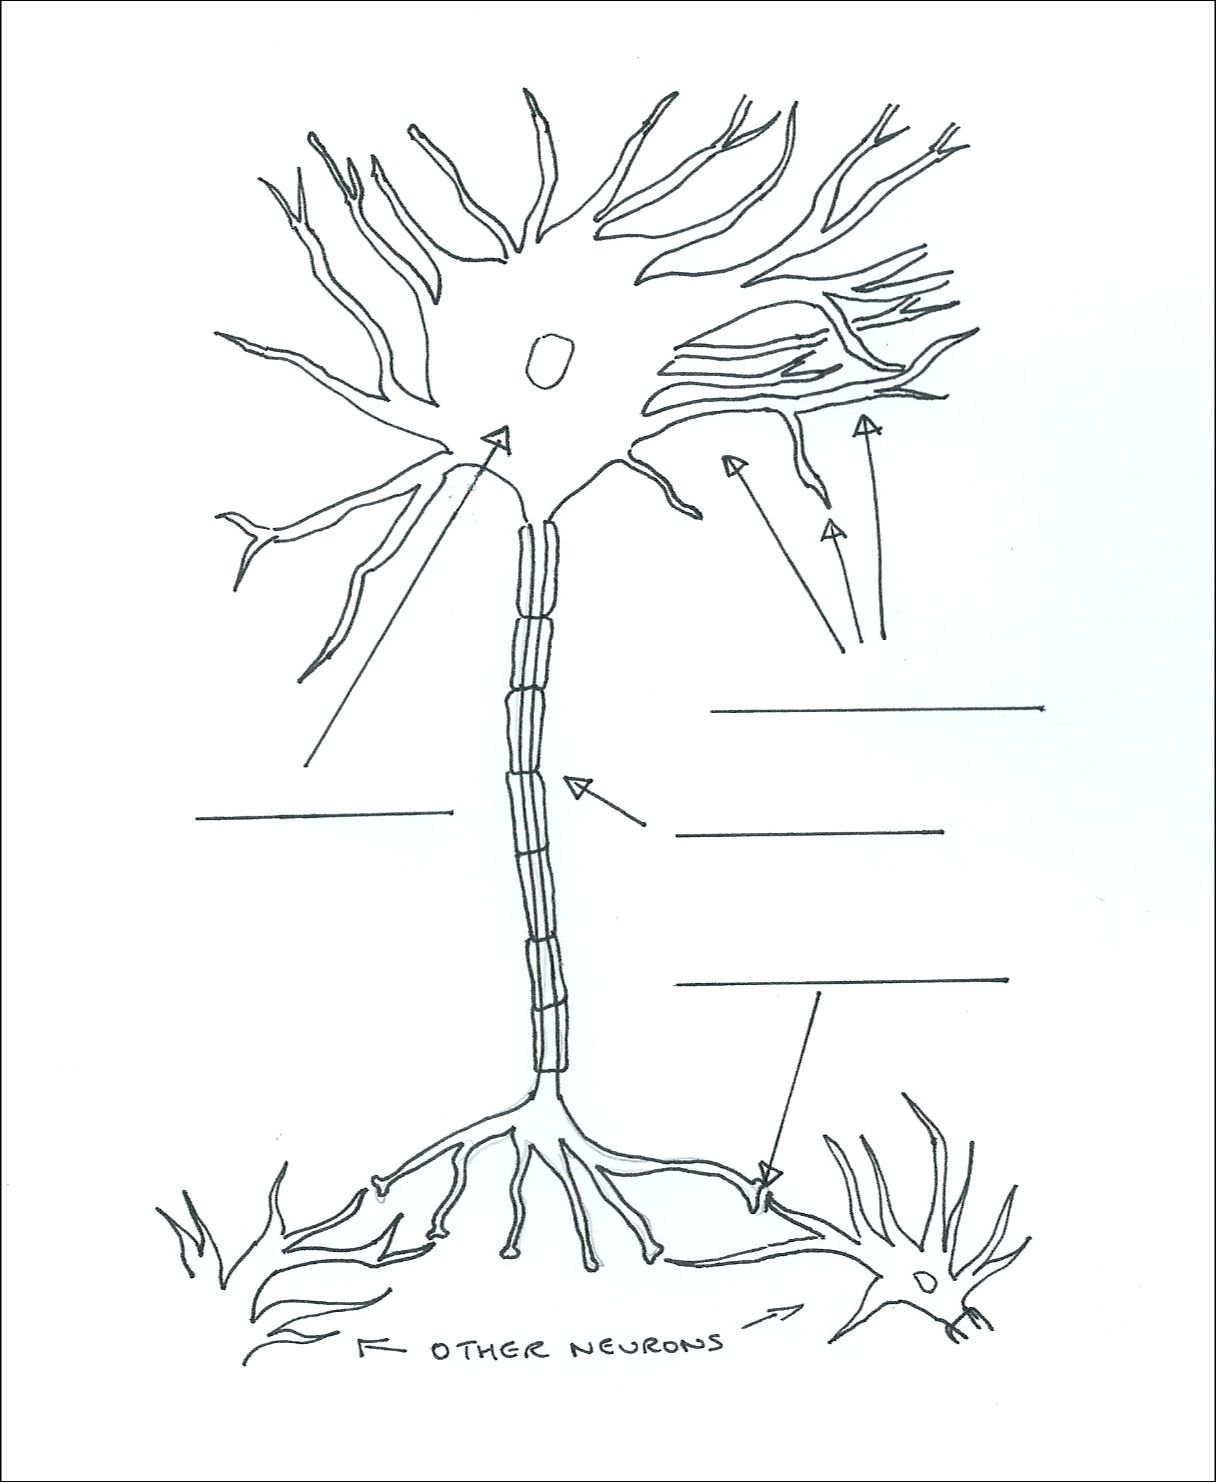 A Pic Of A Neuron From One Of The Worksheets Supporting